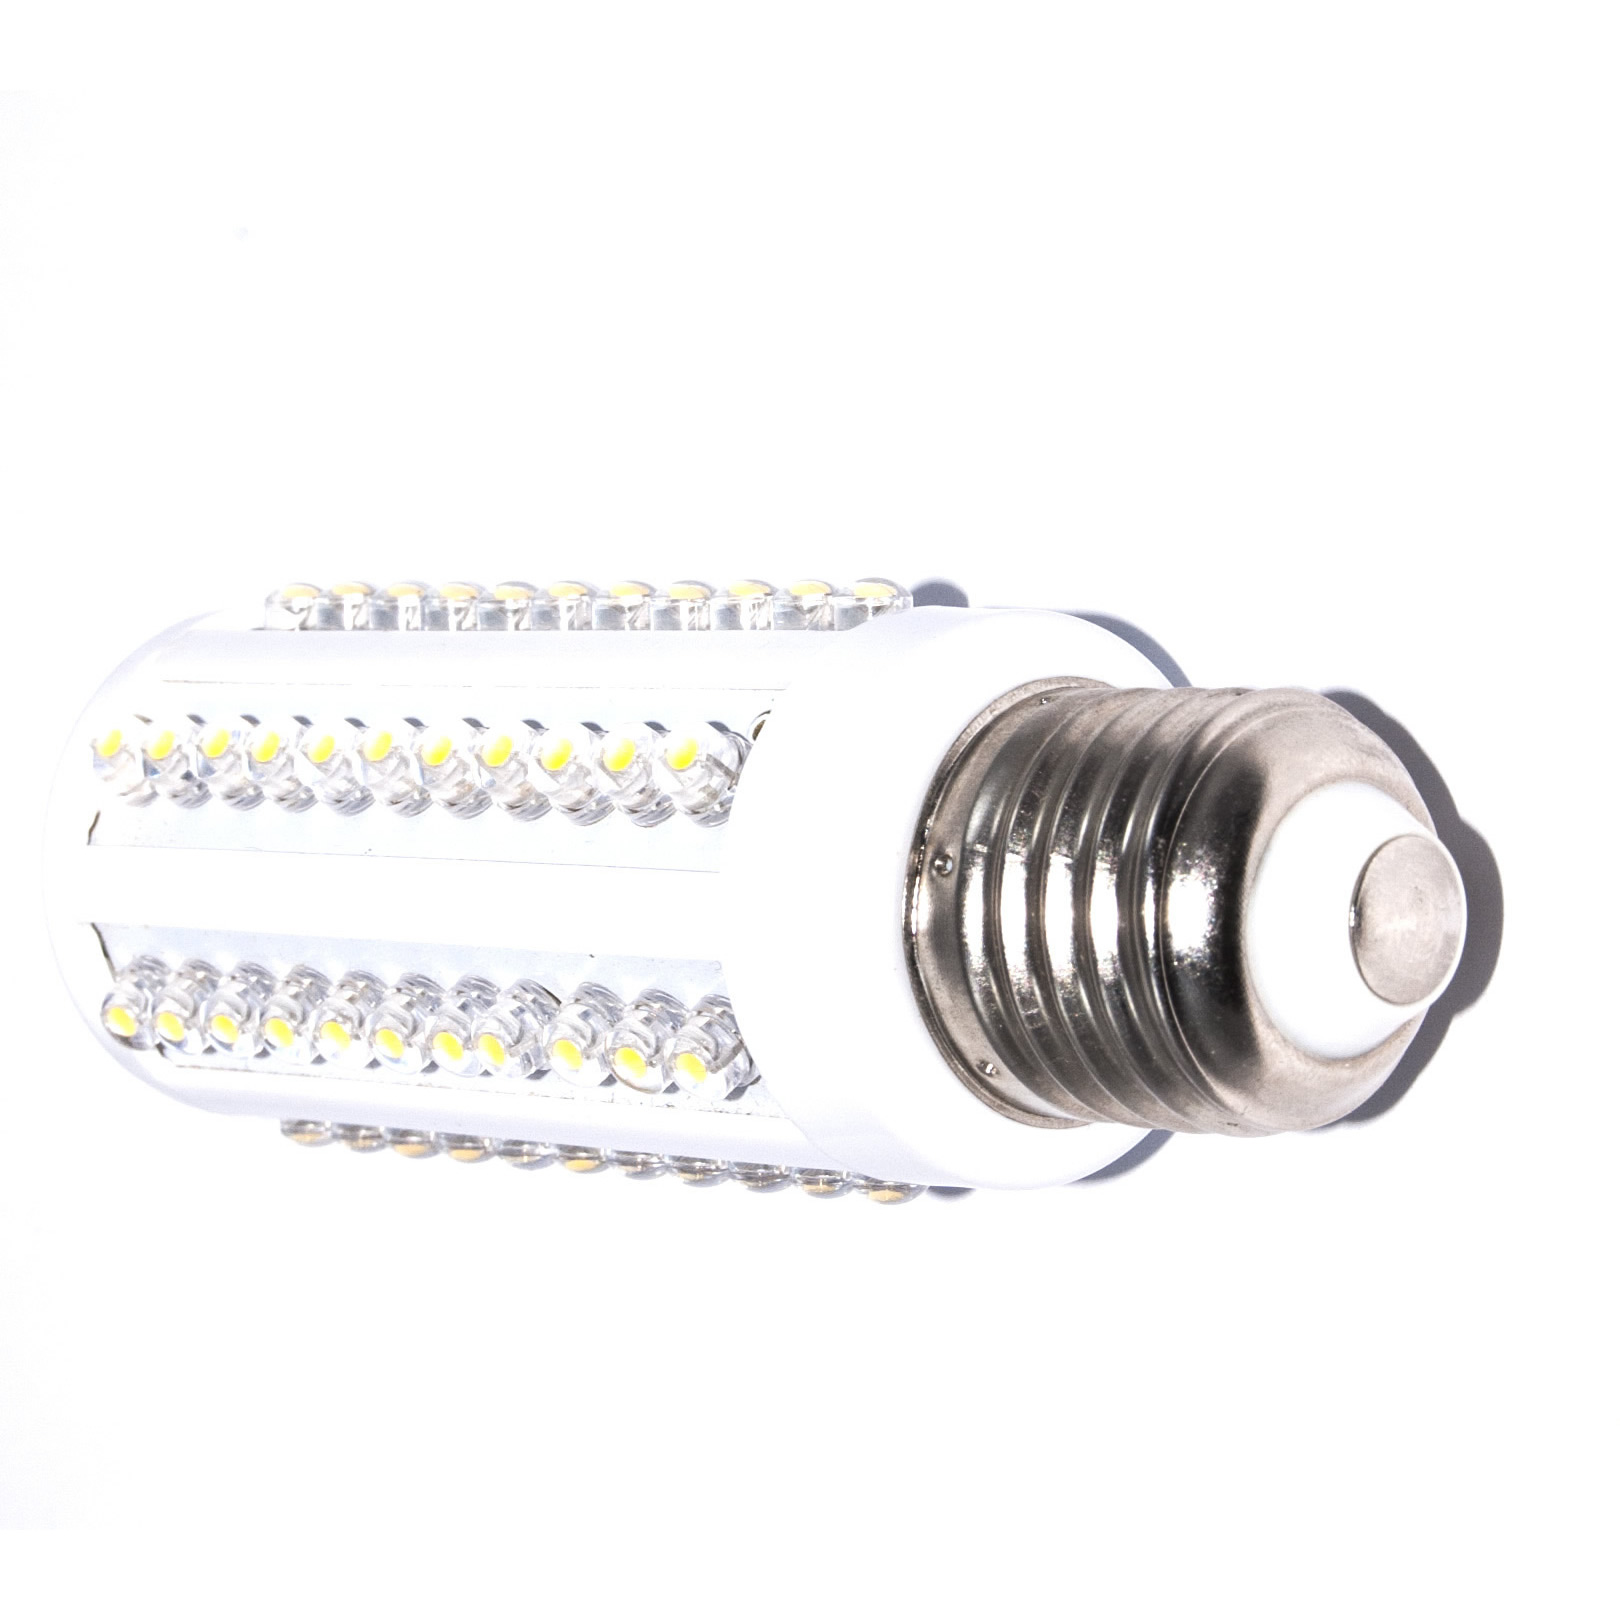 Led spaarlamp 5 watt powerled verlichting for Led lampen 0 5 watt